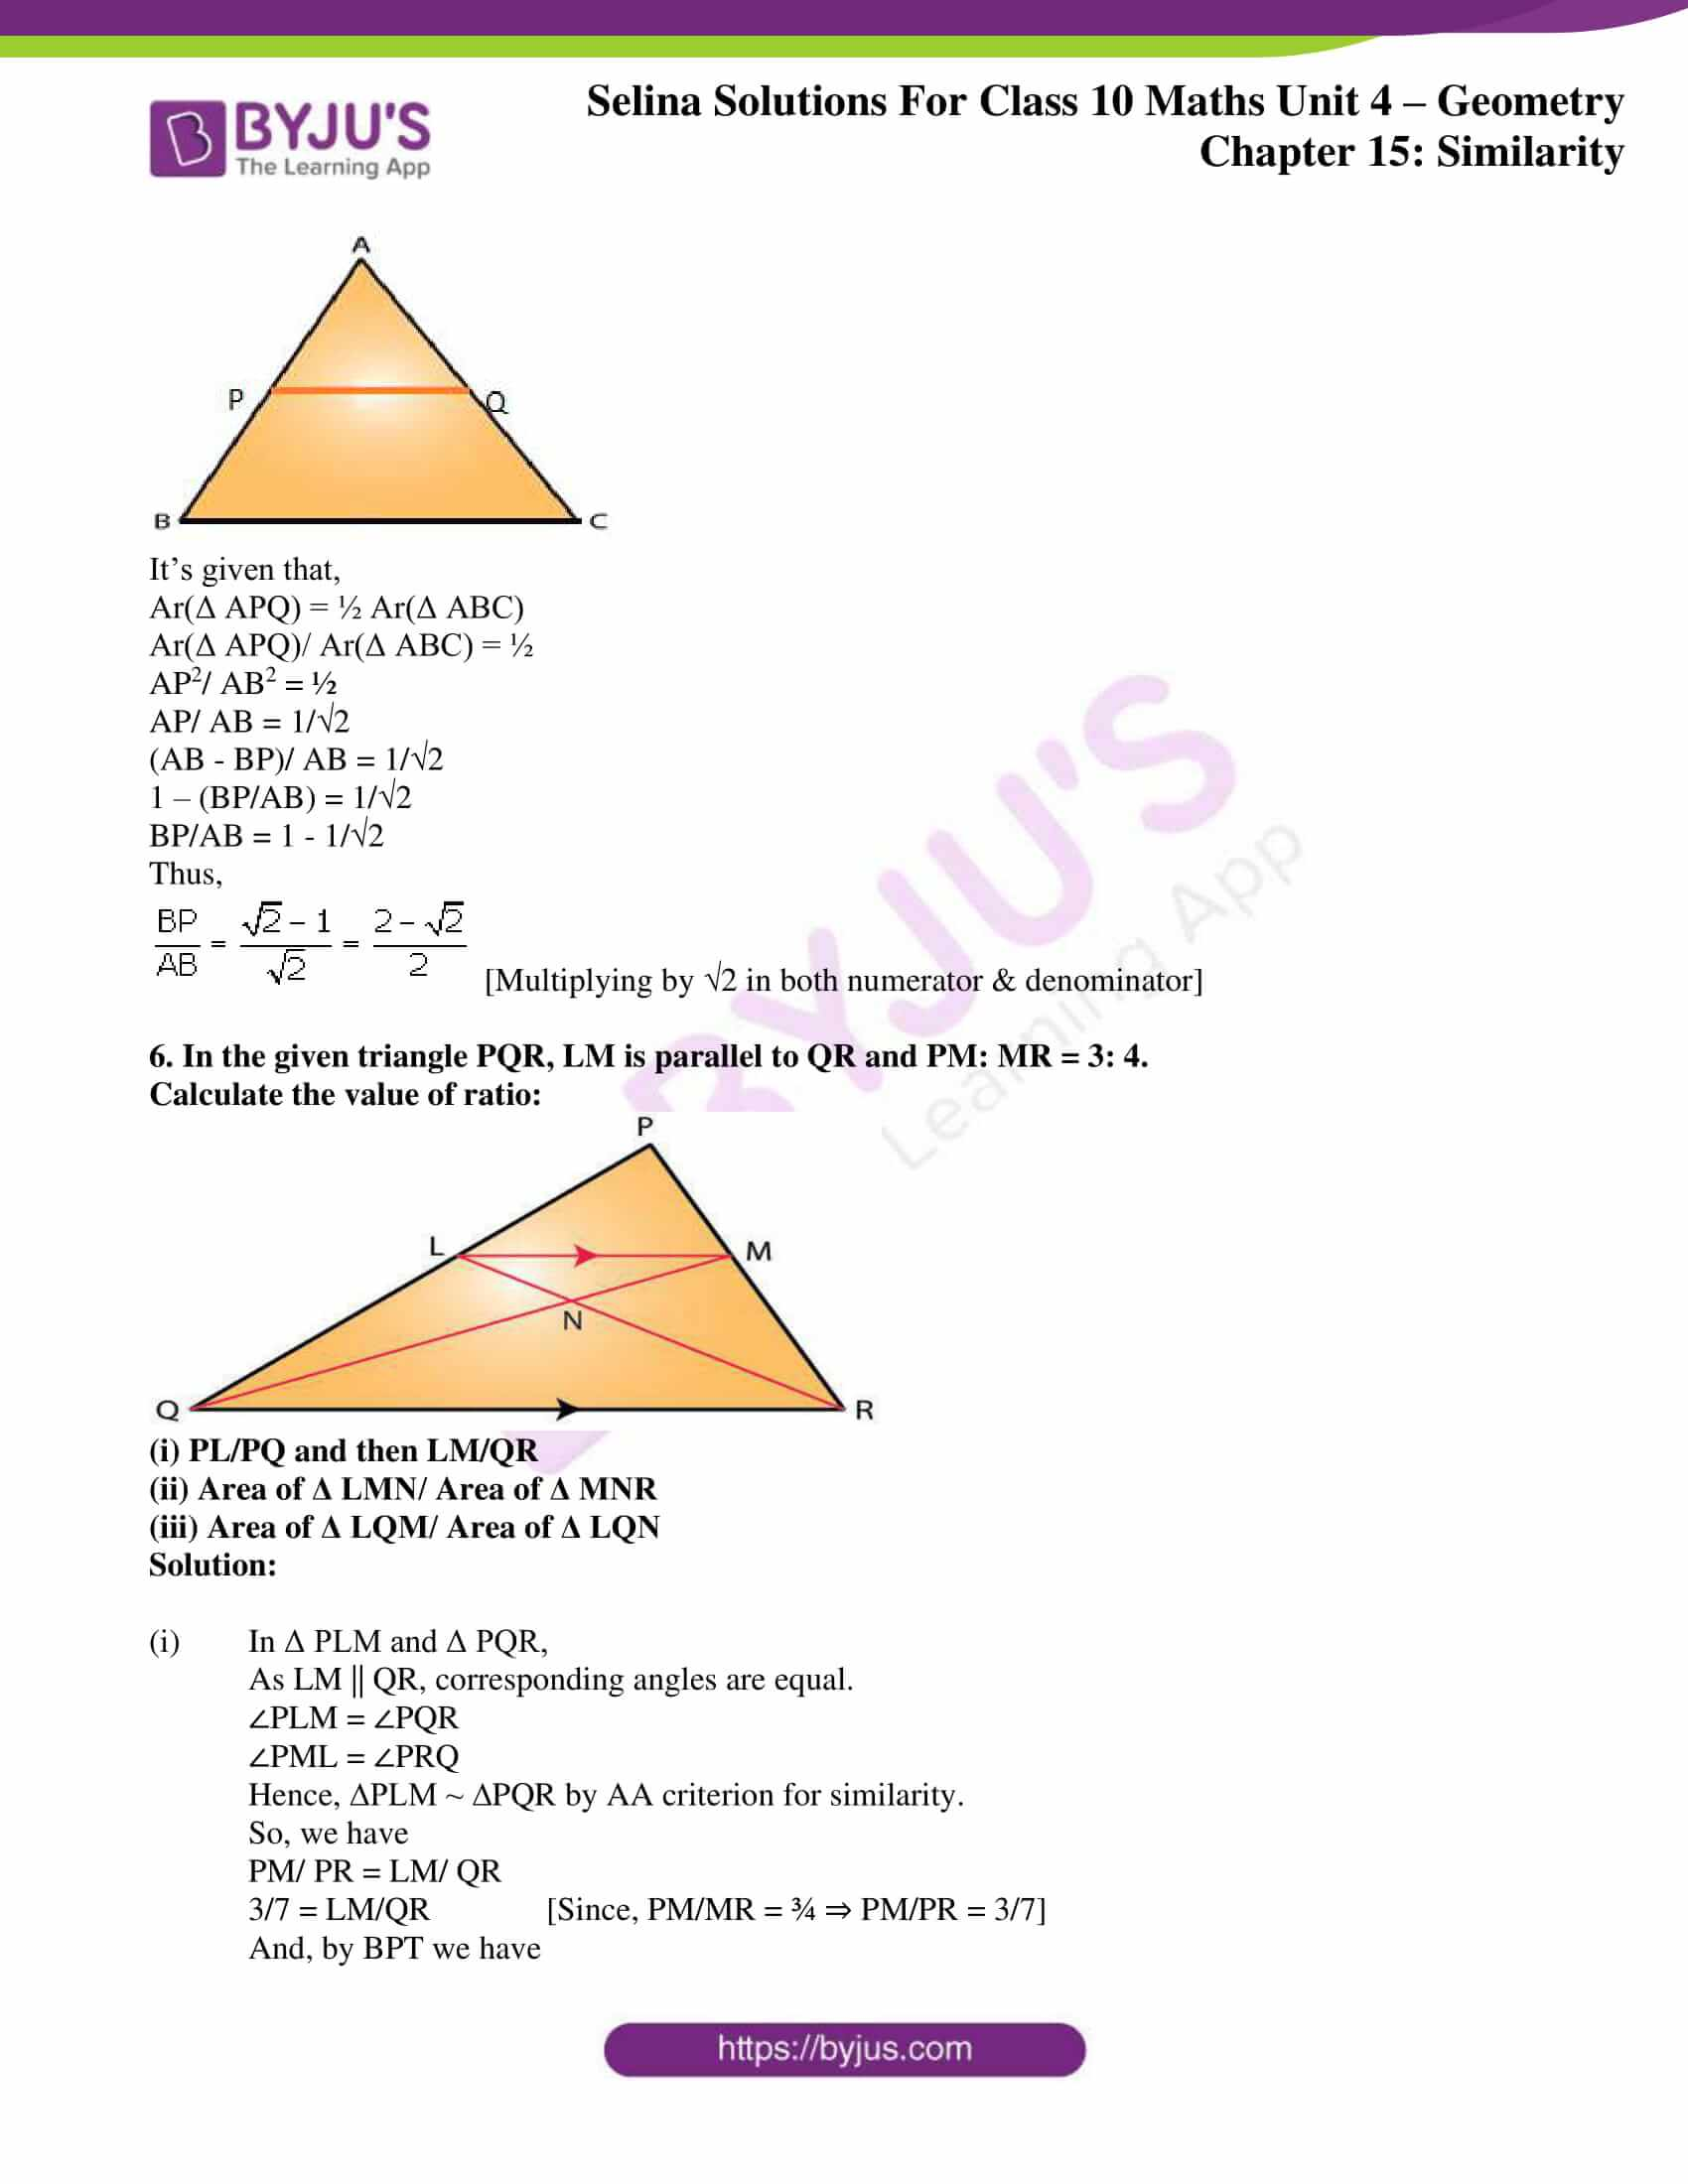 selina solution concise maths class 10 chapter 15 ex c 3